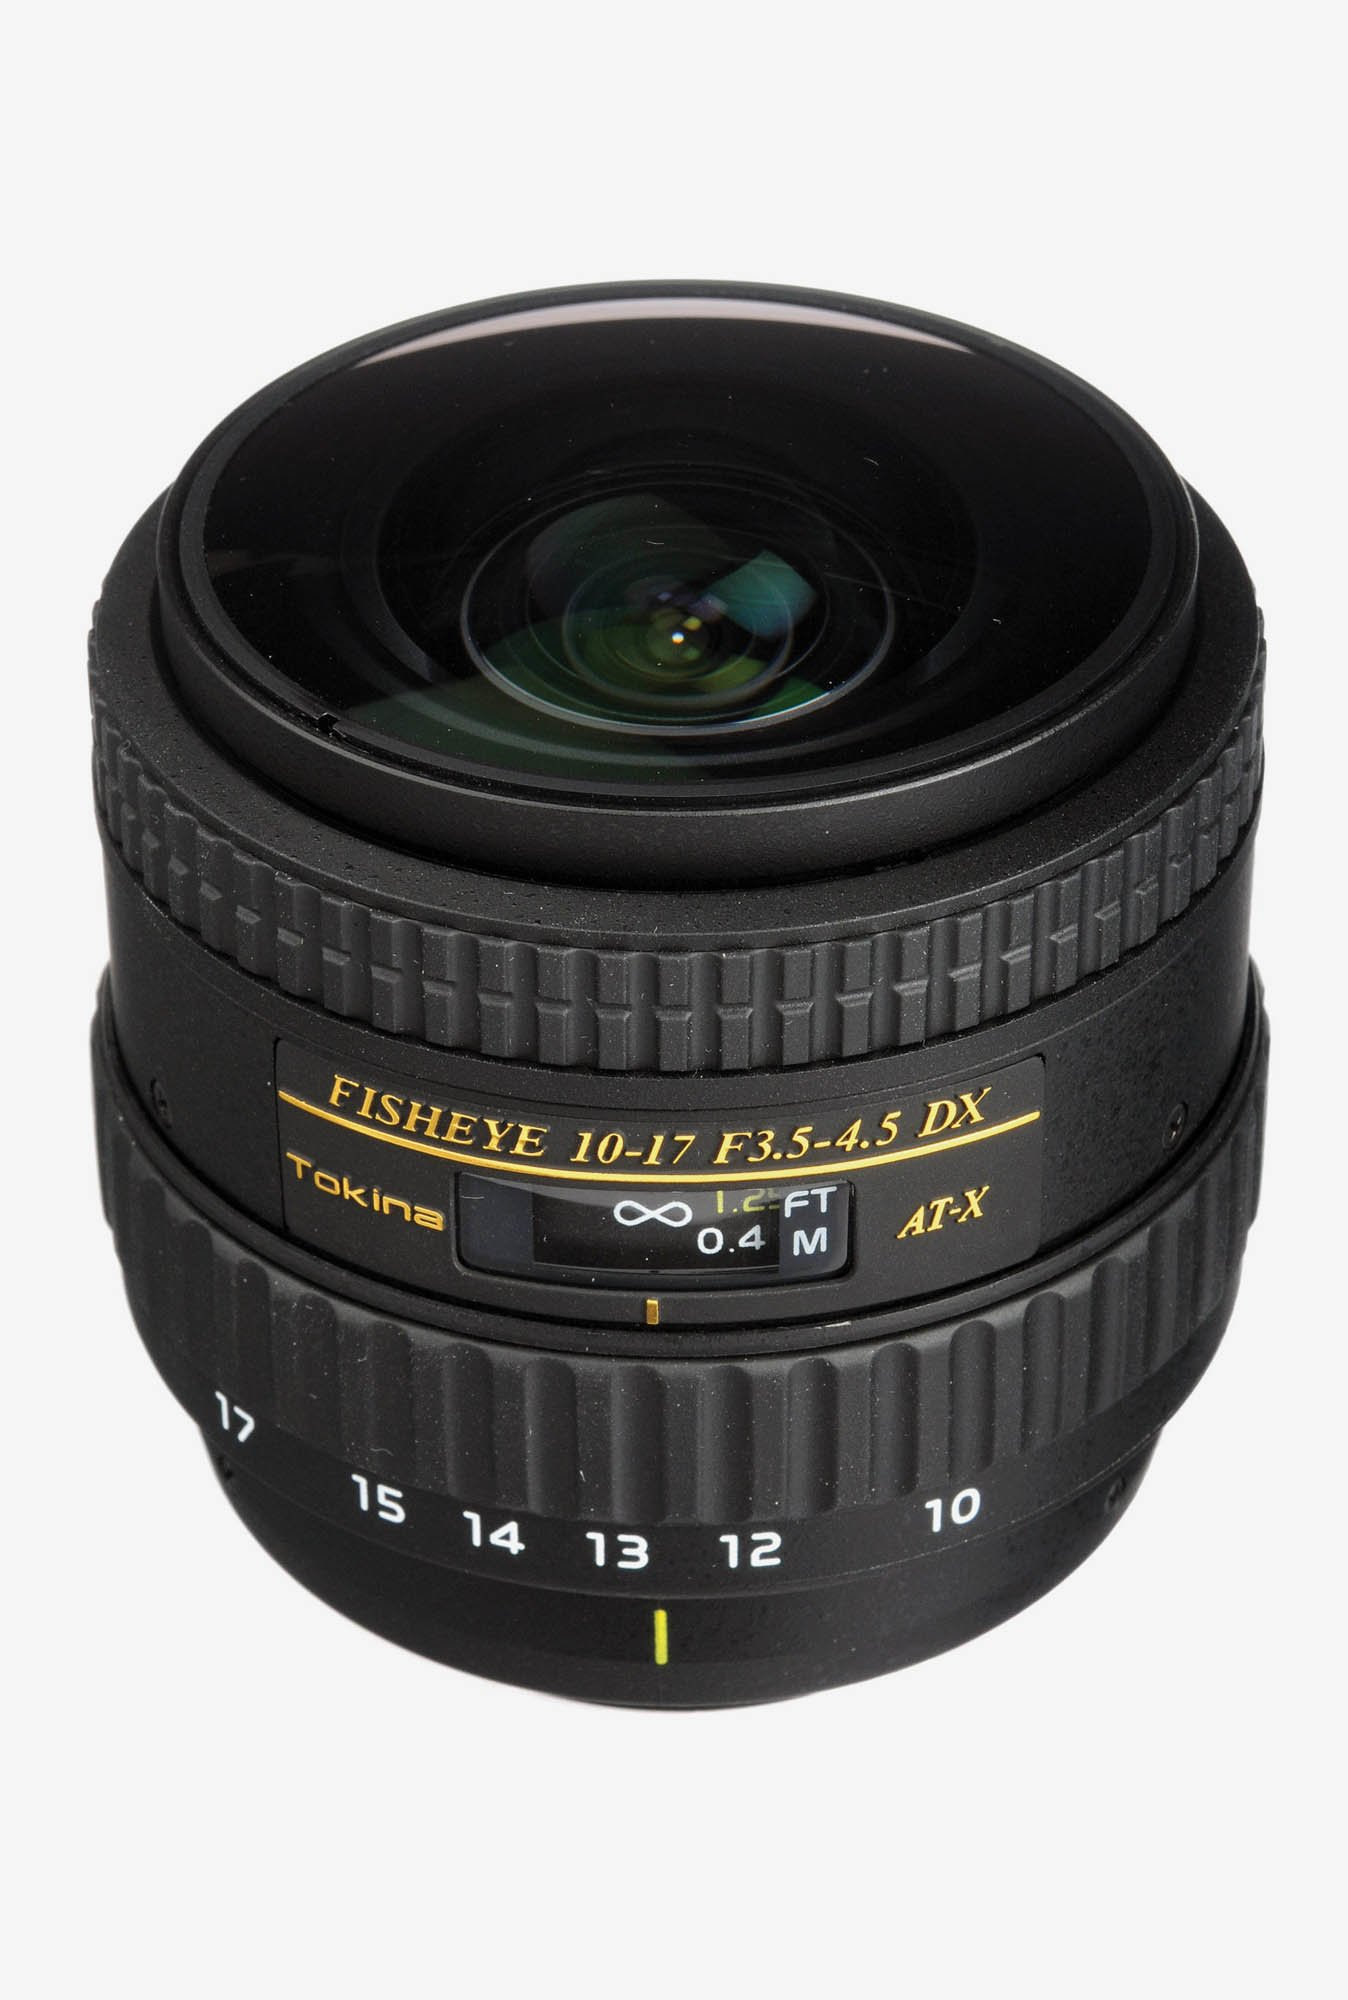 Tokina AF 10 - 17 mm f/3.5 - 4.5 AT-X 107 AF DX NH Fisheye Lens for Nikon Digital SLR